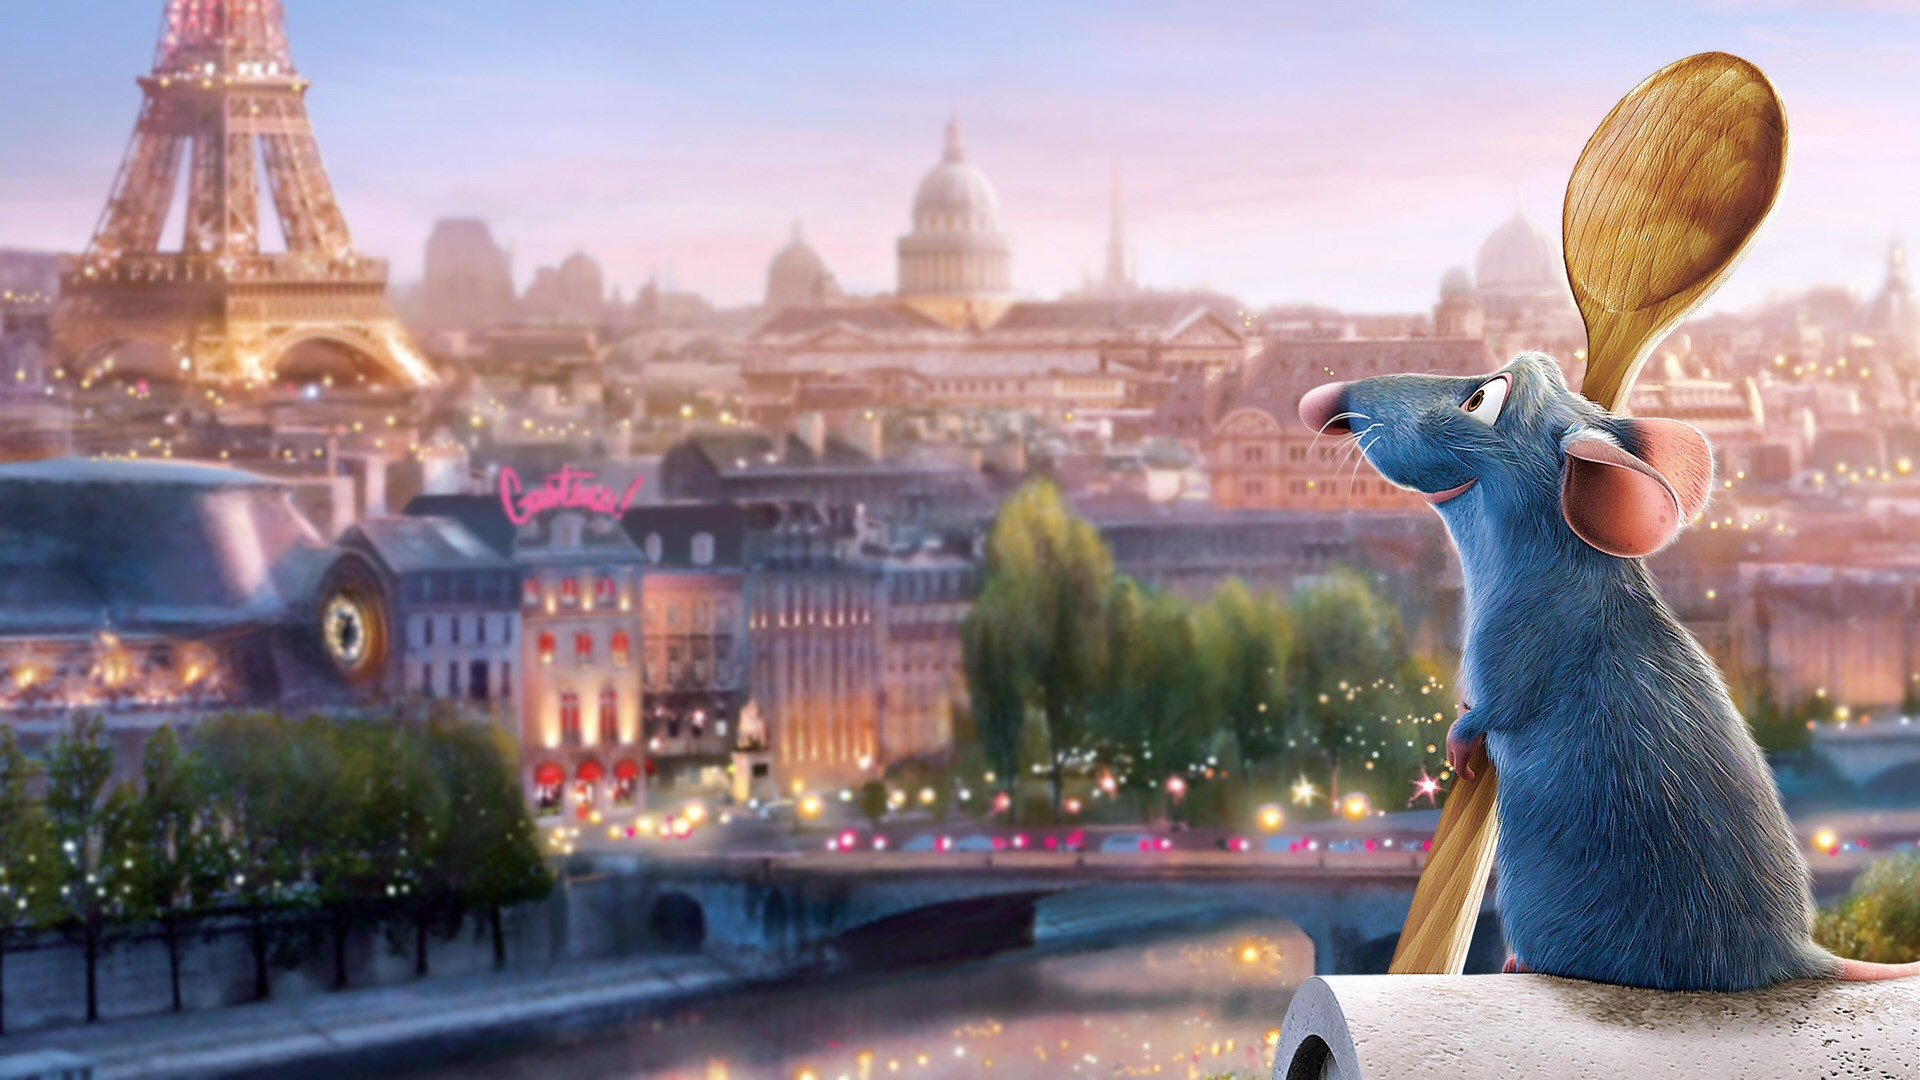 Ratatouille Wallpaper HD